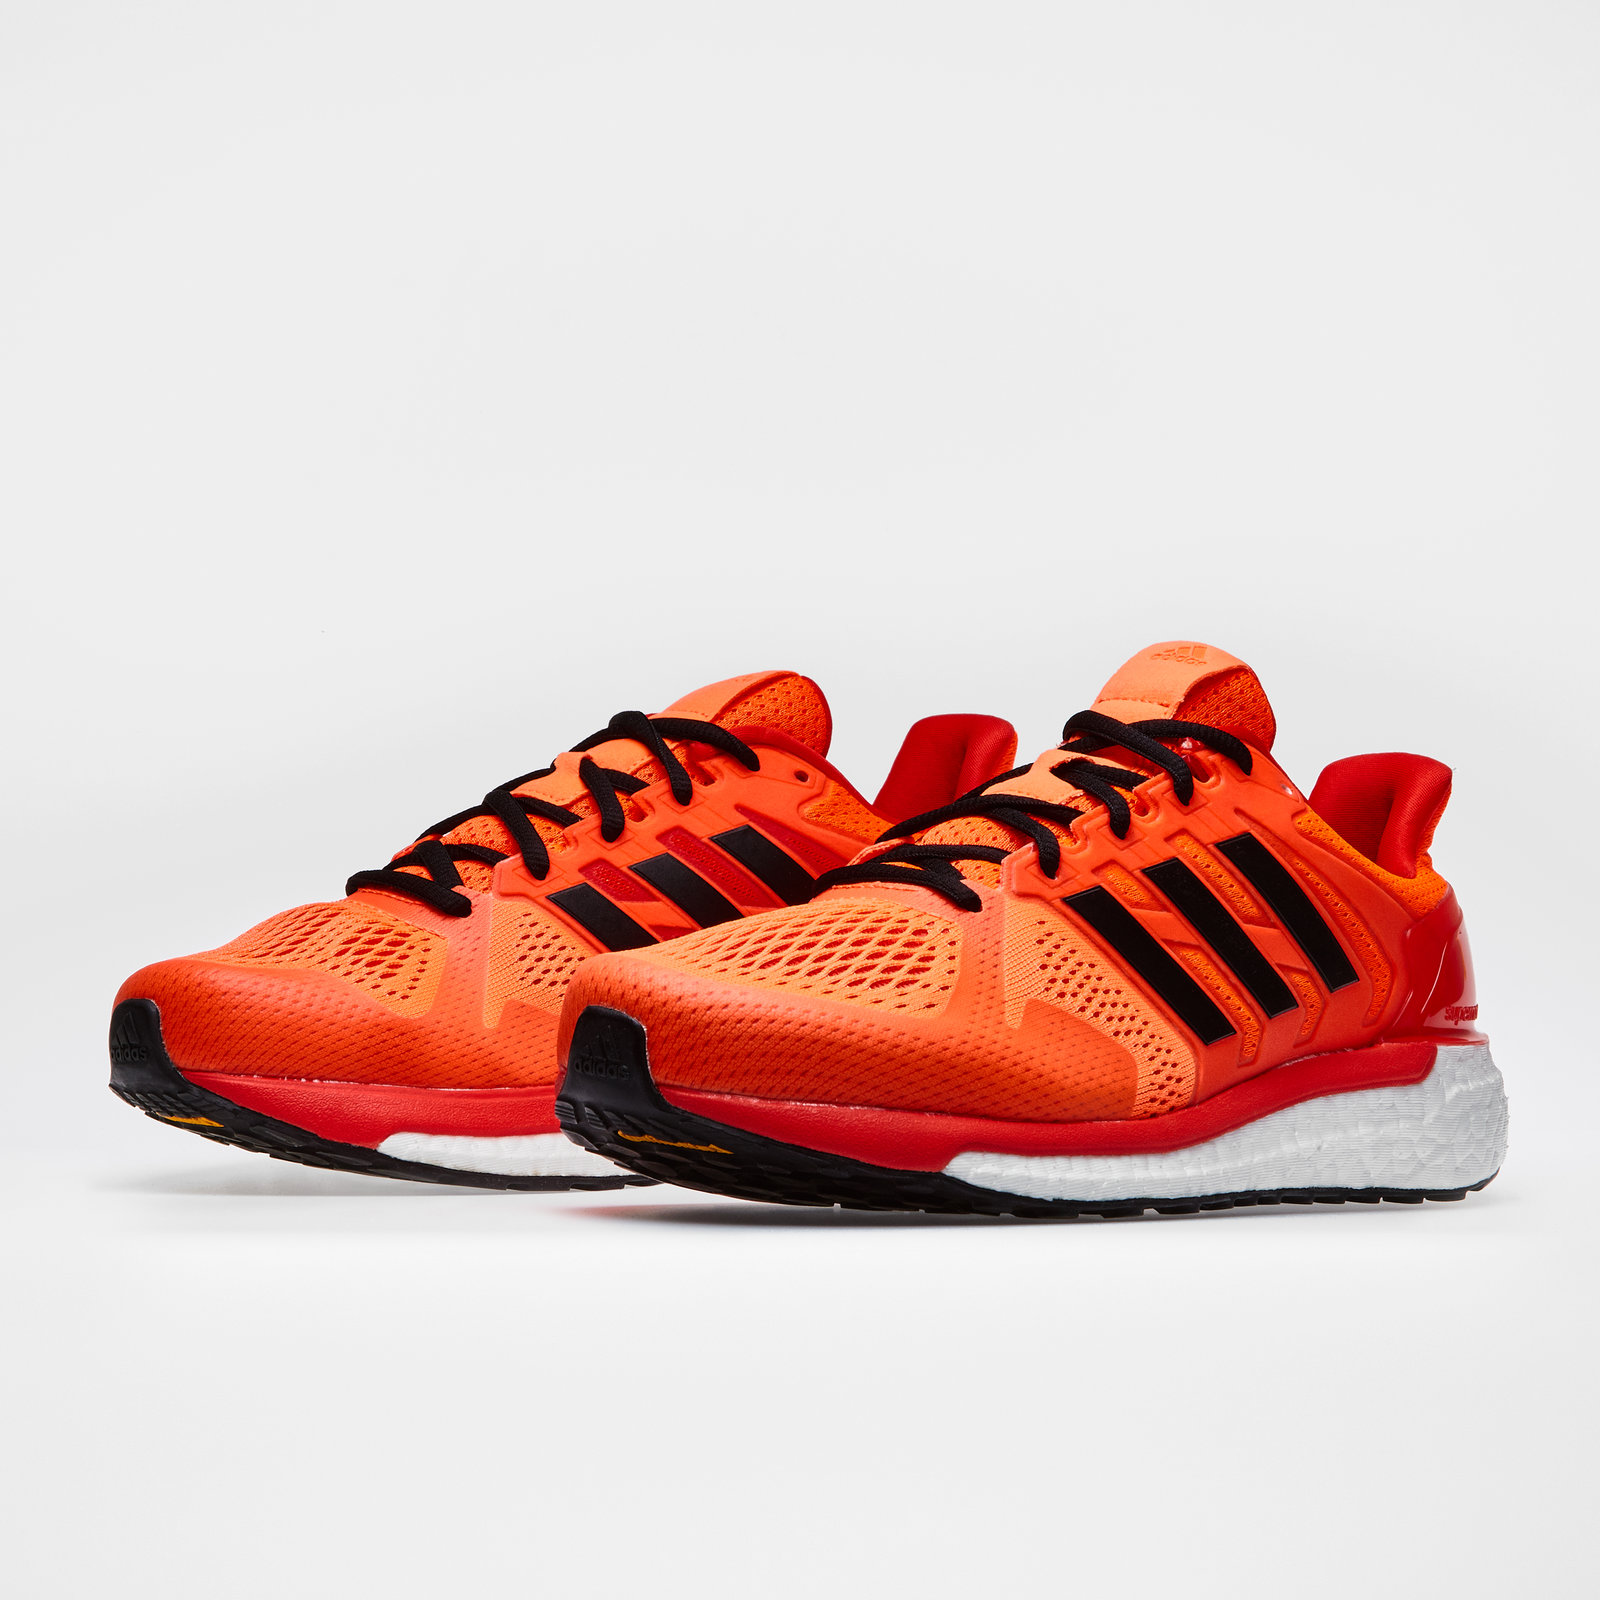 3dbd3e69f adidas Mens Supernova ST Running Shoes Jogging Footwear Sports Trainers  Orange